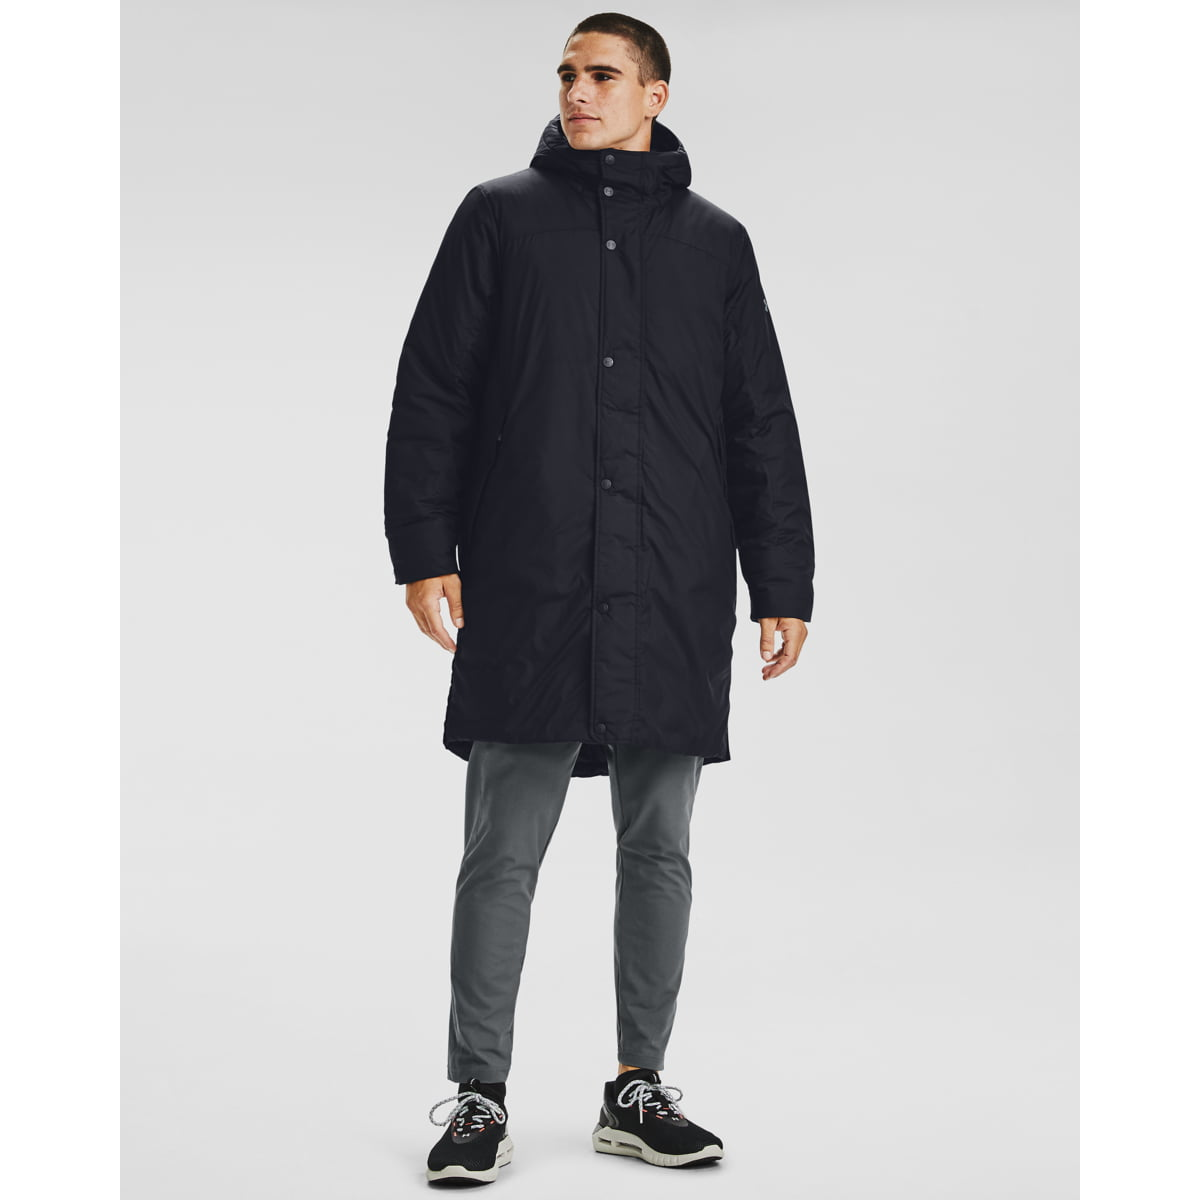 Under Armour INSULATED BENCH COAT